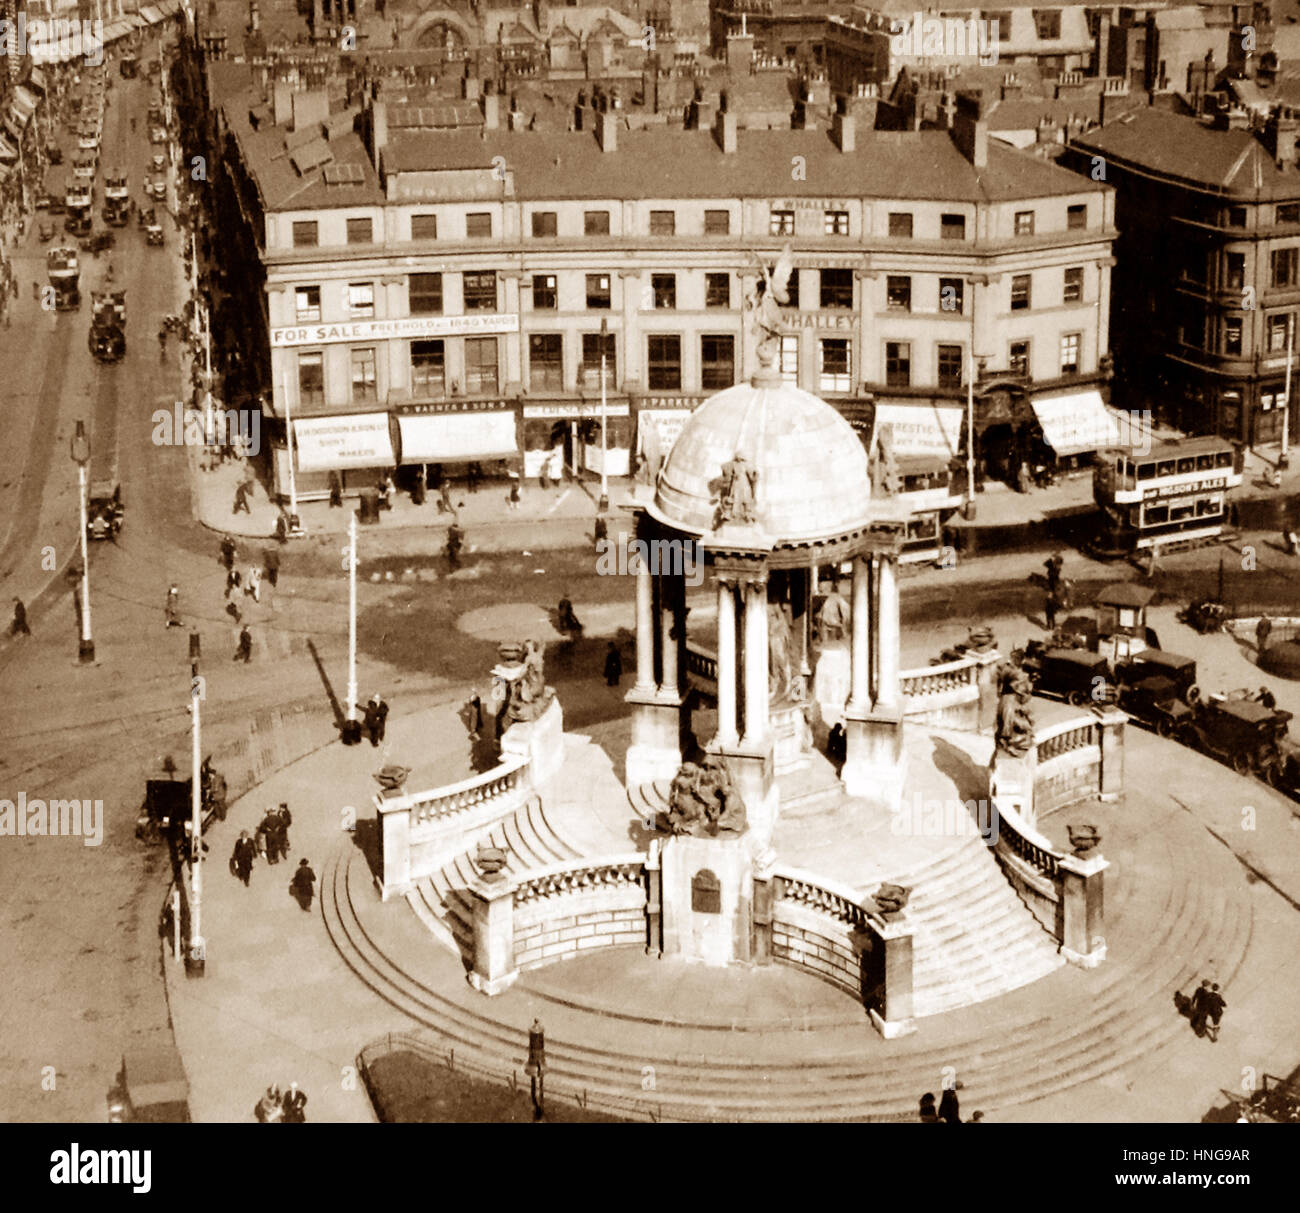 St. George's Circus, Lord Street, Liverpool - probably 1920s Stock Photo